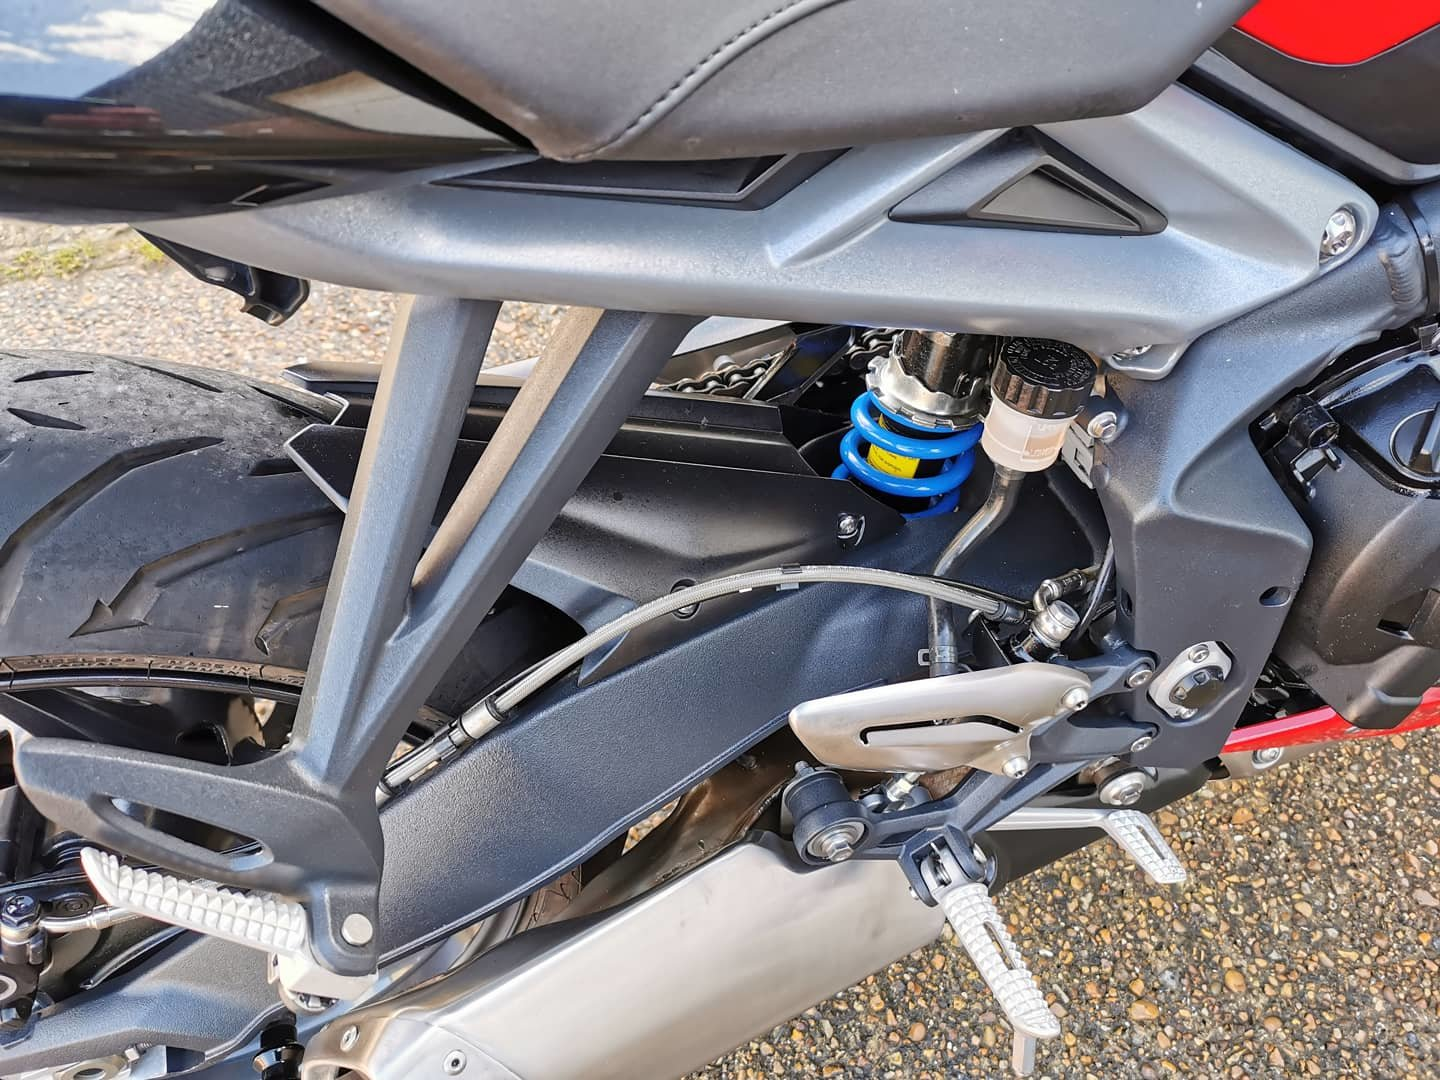 2015-64 Triumph Street triple 675 ABS *low miles* For Sale (picture 6 of 10)